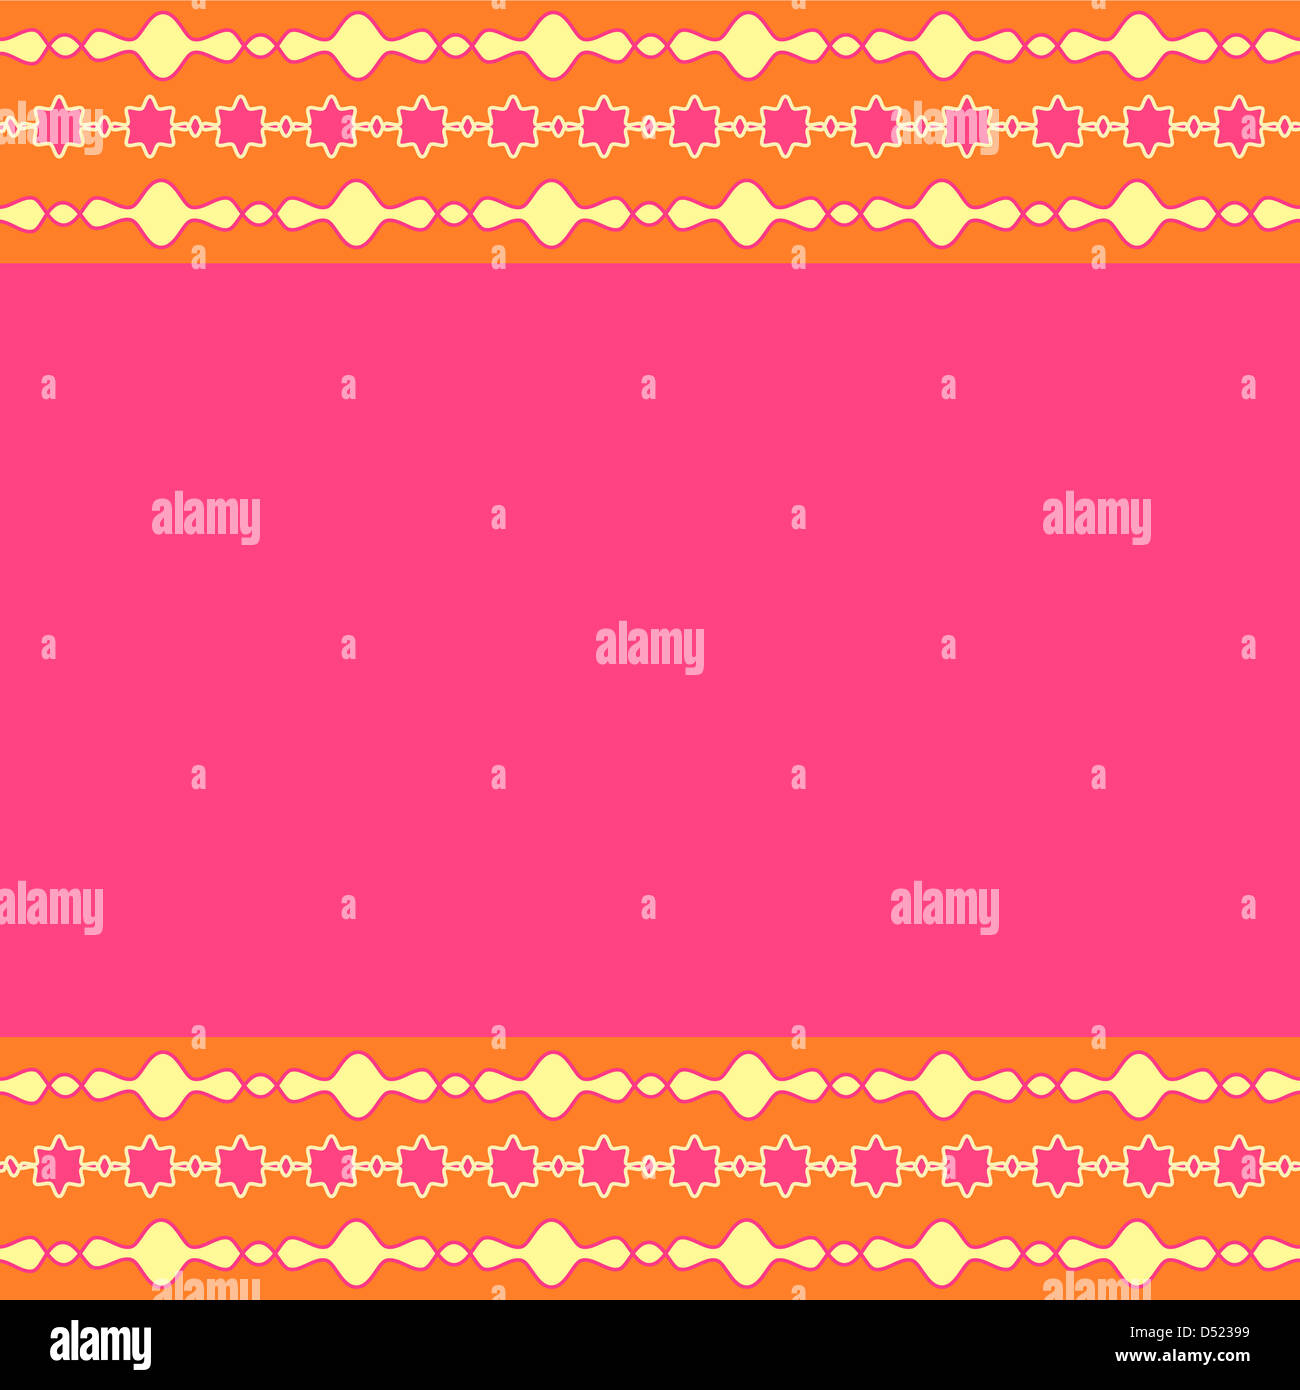 Artistic border design with colorful  copy space Stock Photo